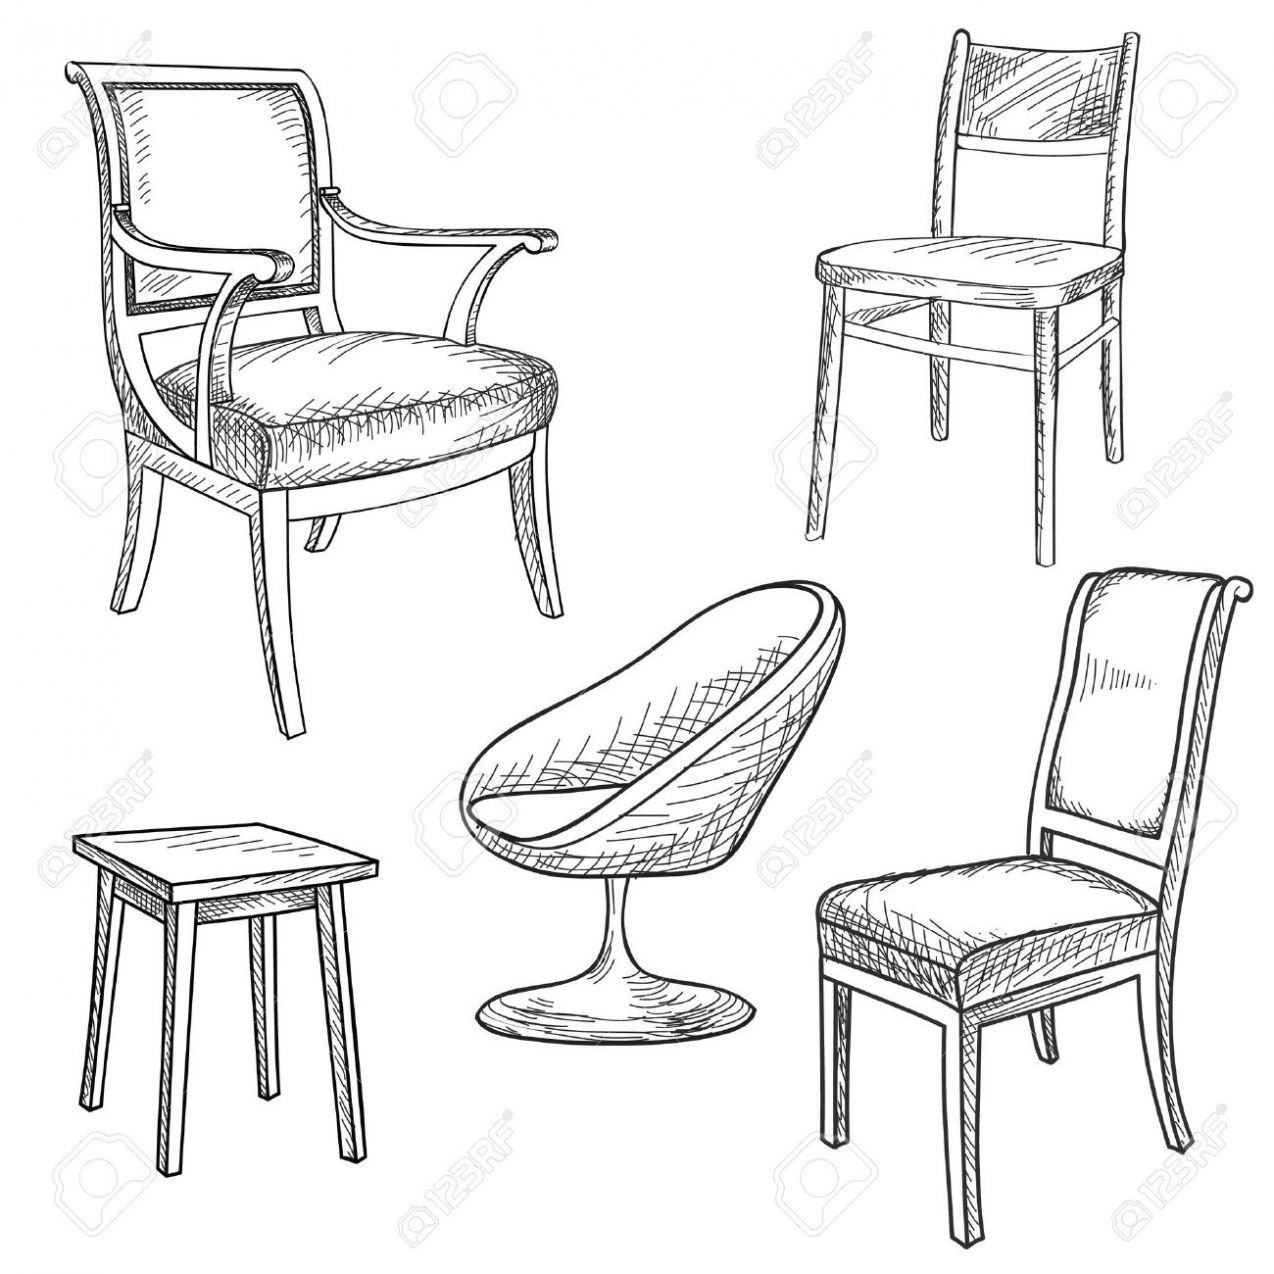 Furniture Drawing At Getdrawings